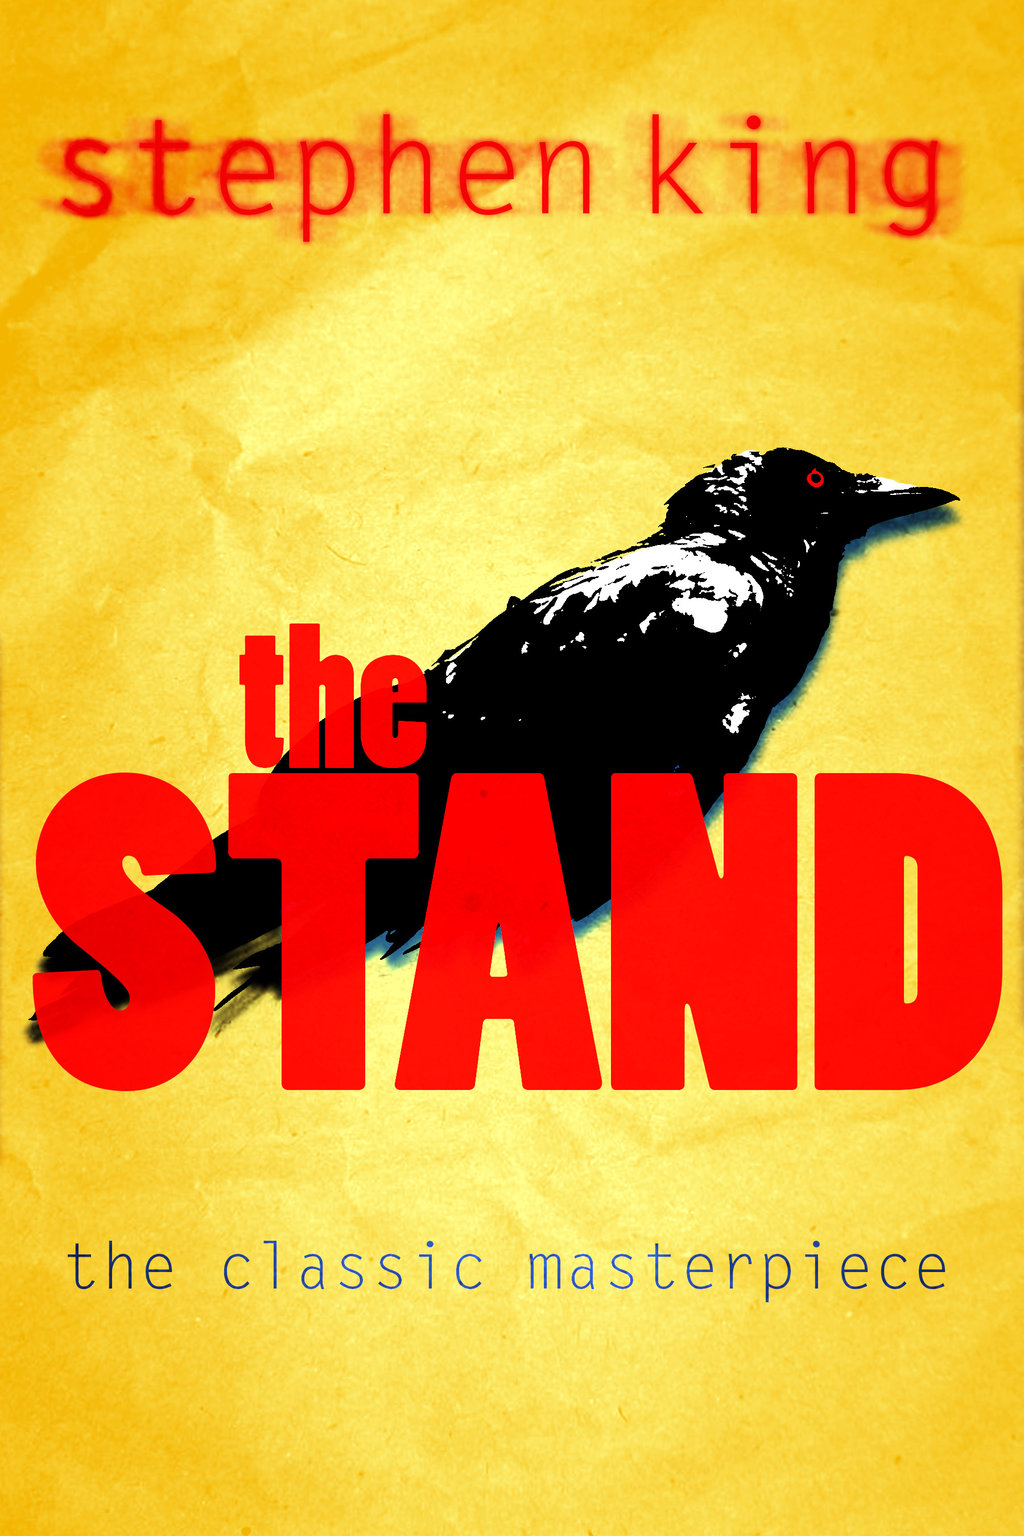 stephen_king_the_stand_book_cover_design_by_carlylynbookcovers-d8g5li7